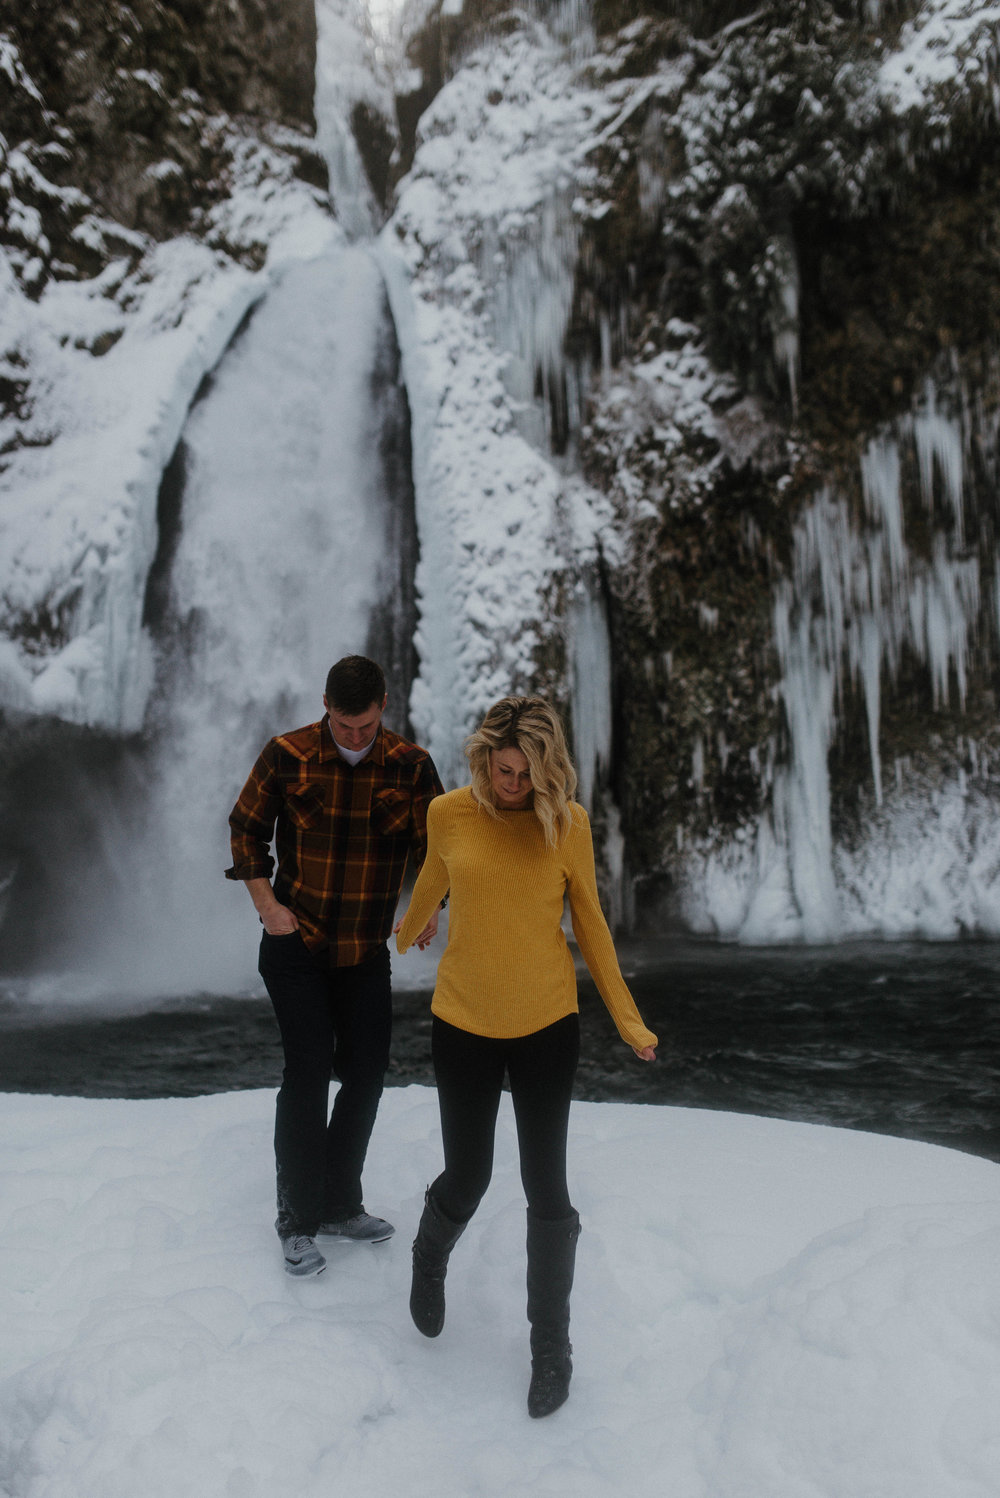 Columbia River Gorge Engagment Session | Engagement Photo Ideas | Snow Engagemens | Winter Engagement | Jessicaheronimages.com | Oregon Waterfall Engagment | Oregon Photographer | PNW Engagment